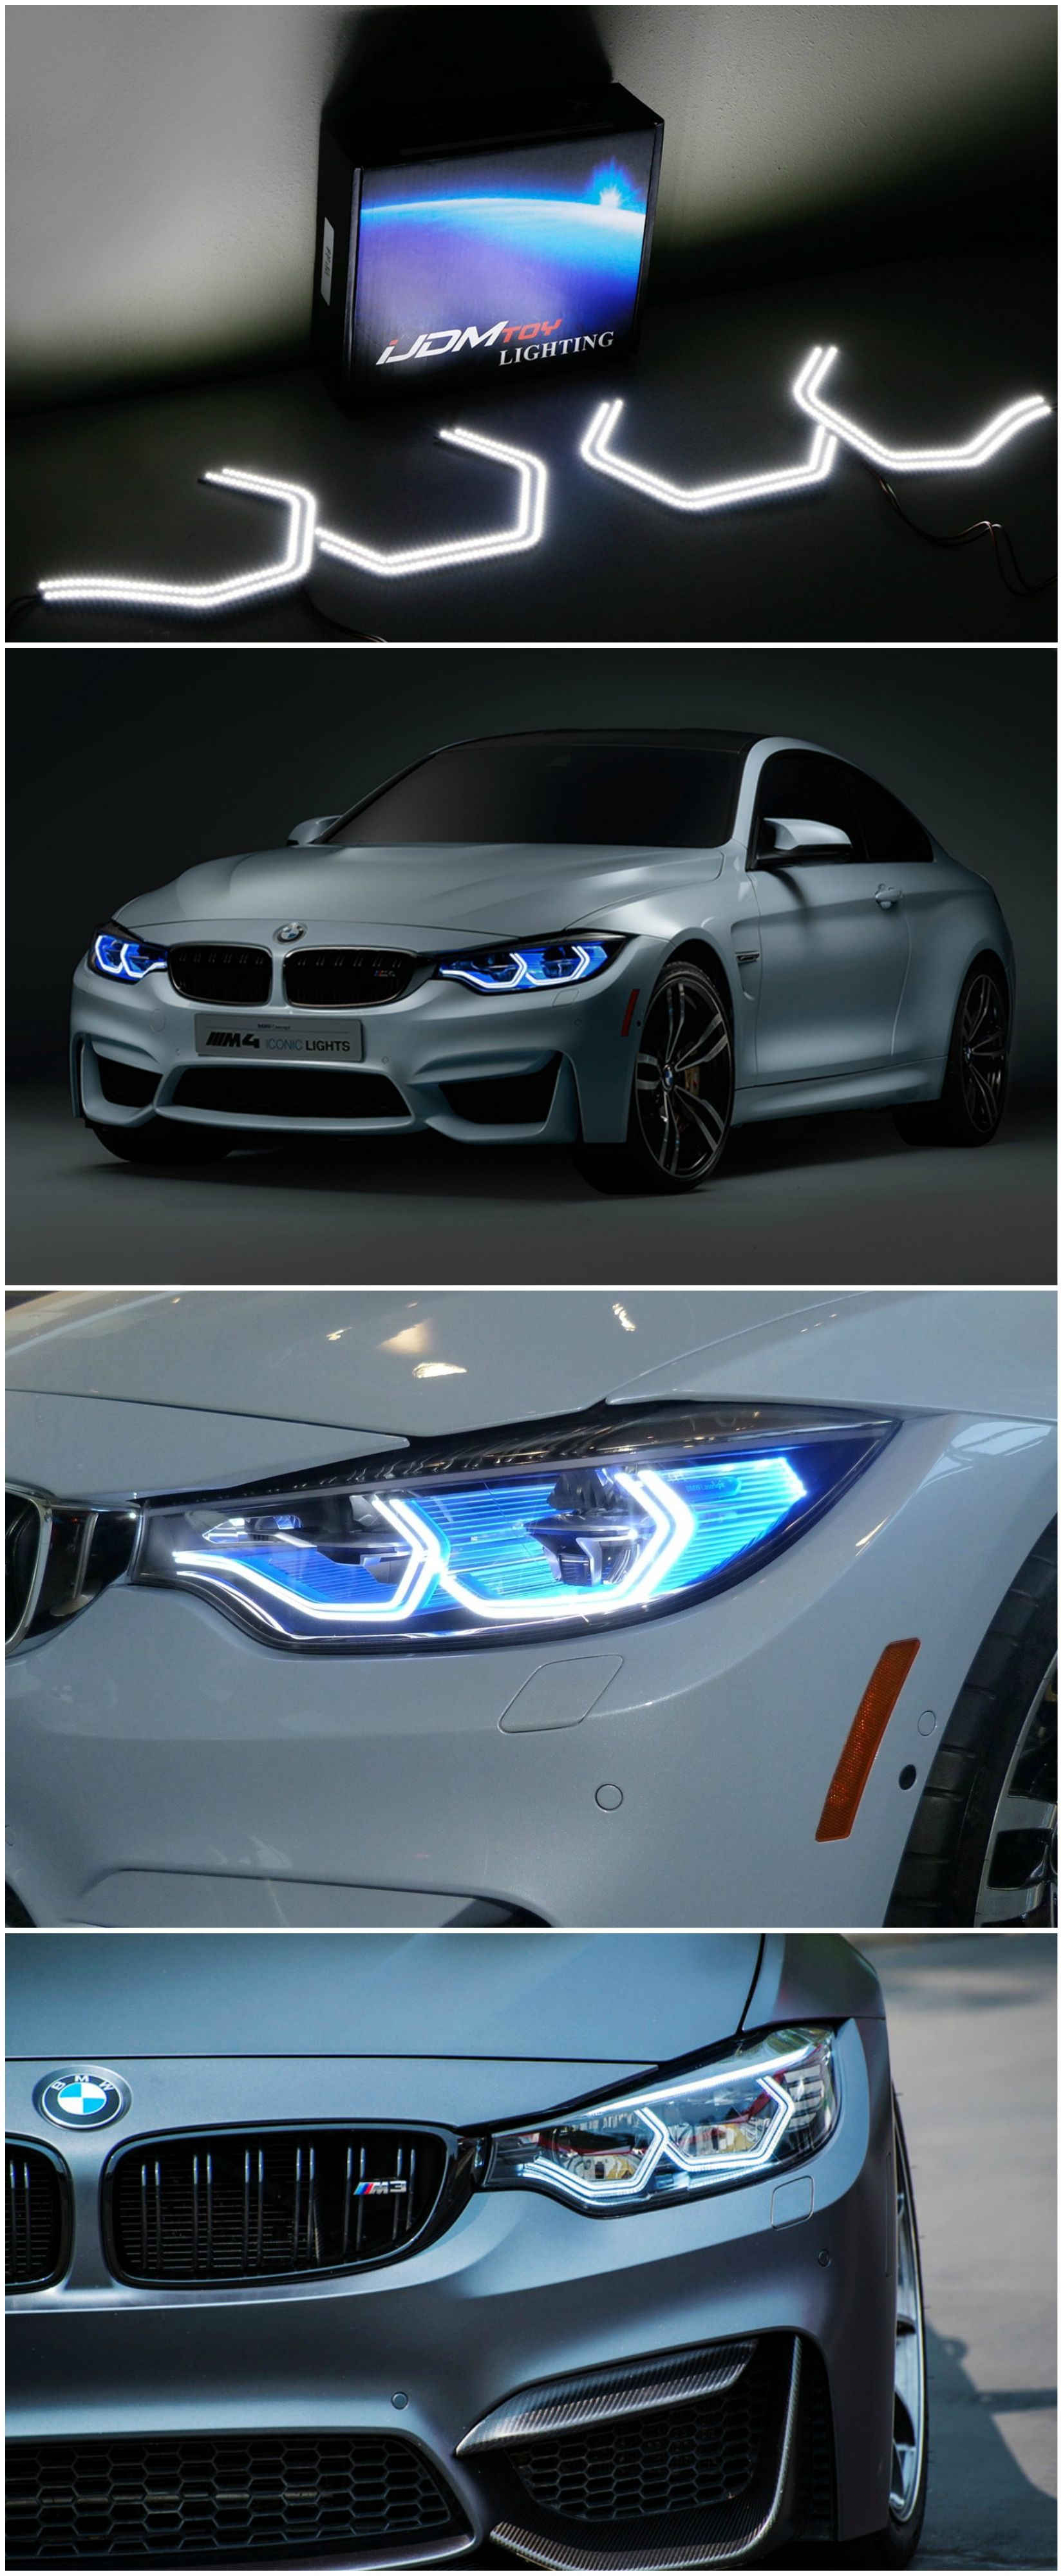 The Iconic M4 Style Angel Eye Halo Rings Is Now Available To Retrofit Onto Your Bmw S Headlights This New Dynamic And Edgy Look Wil Bmw Angel Eyes Style Icons